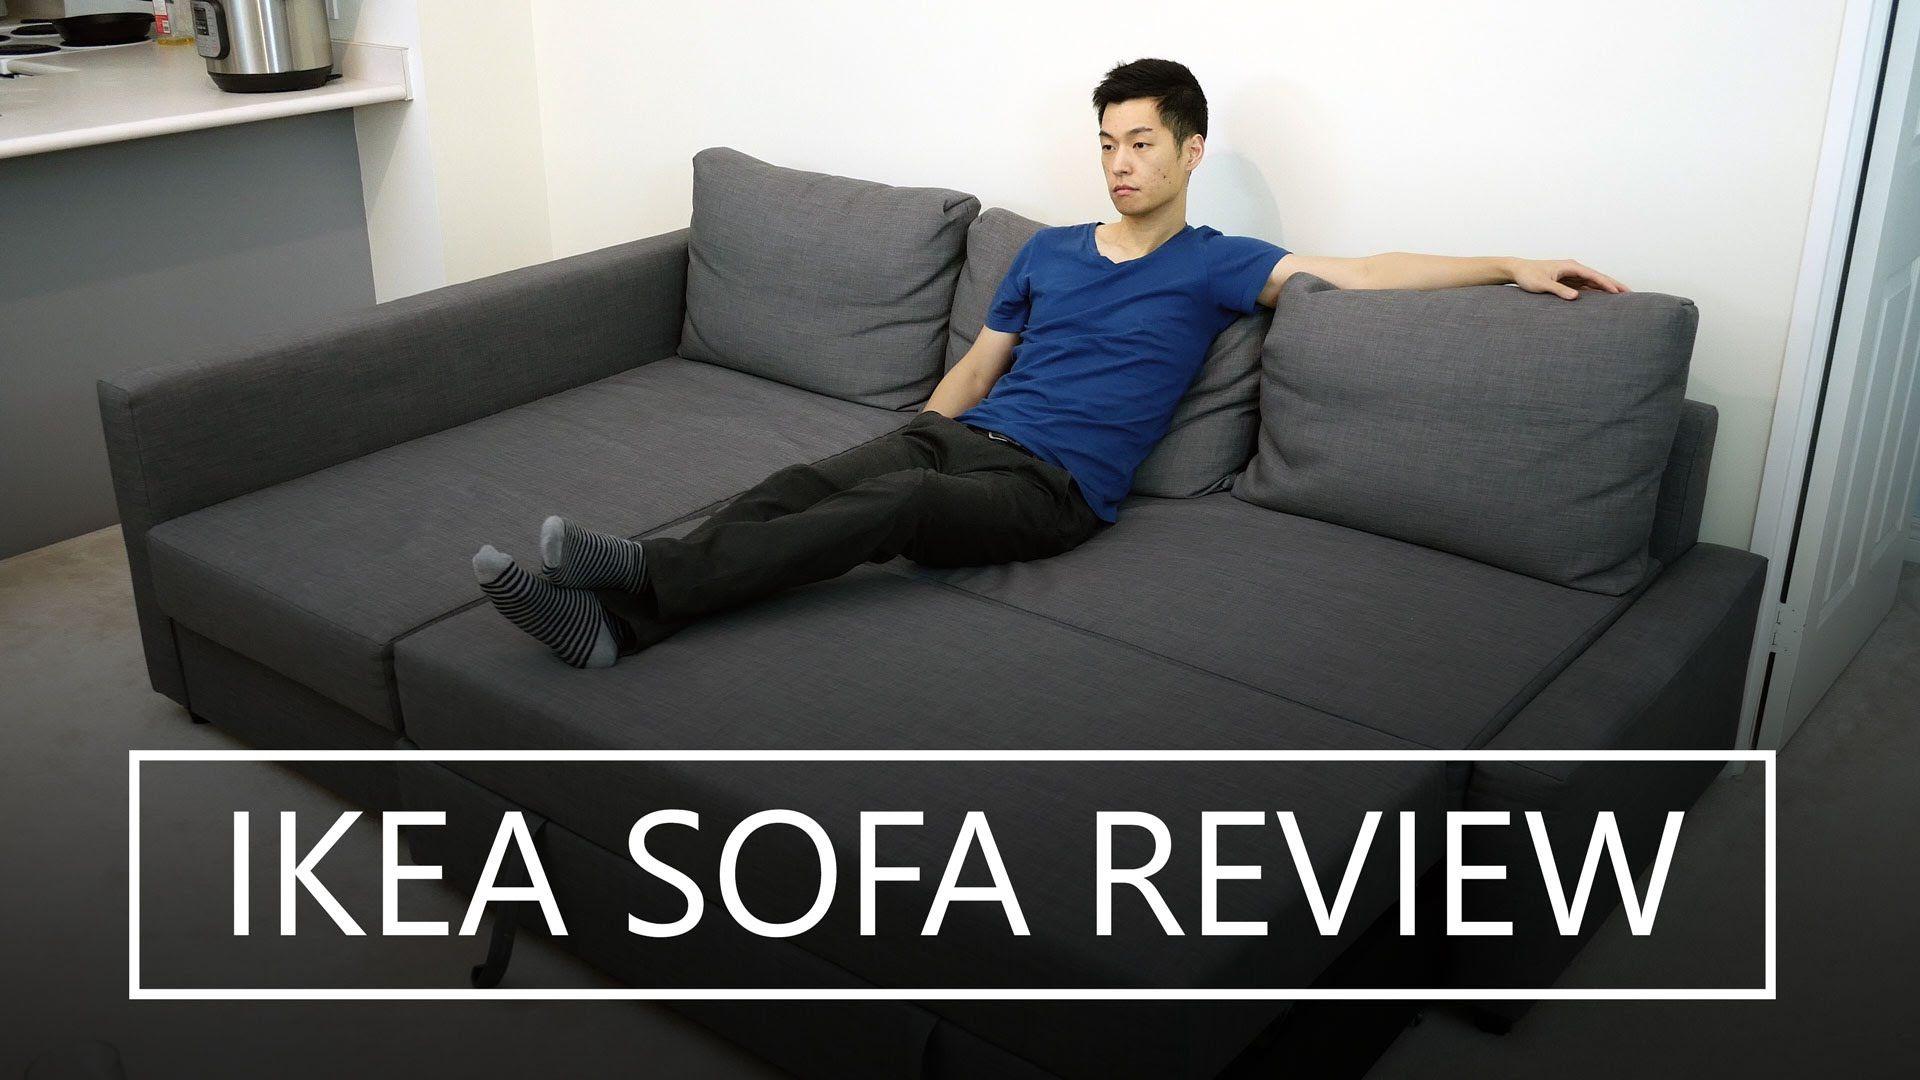 Ikea Matras Review Ikea Friheten Sofa Bed Review Sleeper Sofa Twin Bed To